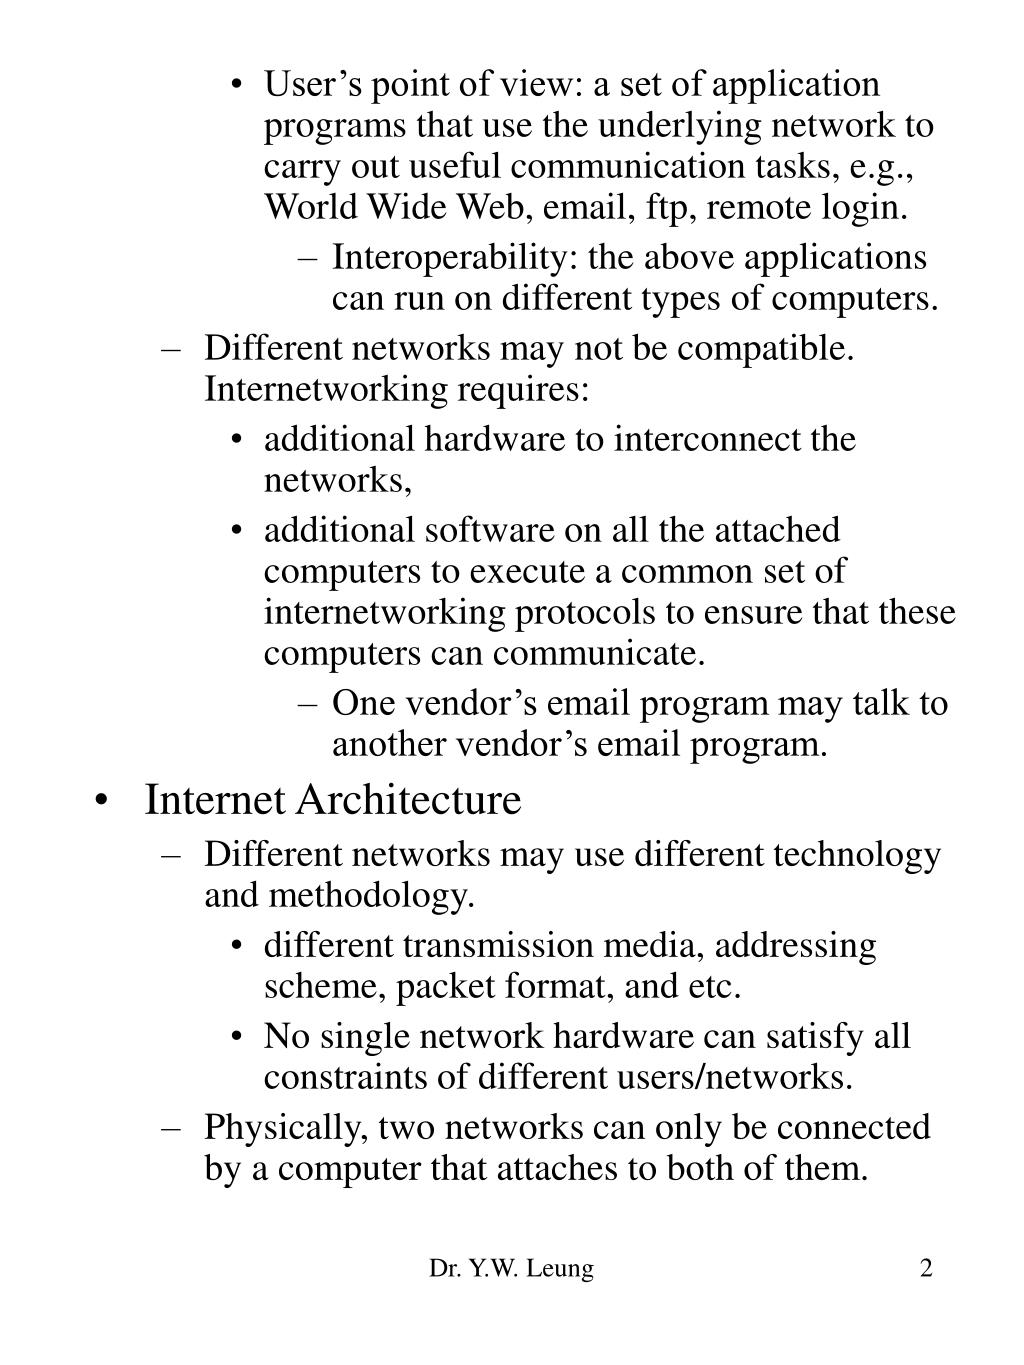 User's point of view: a set of application programs that use the underlying network to carry out useful communication tasks, e.g.,